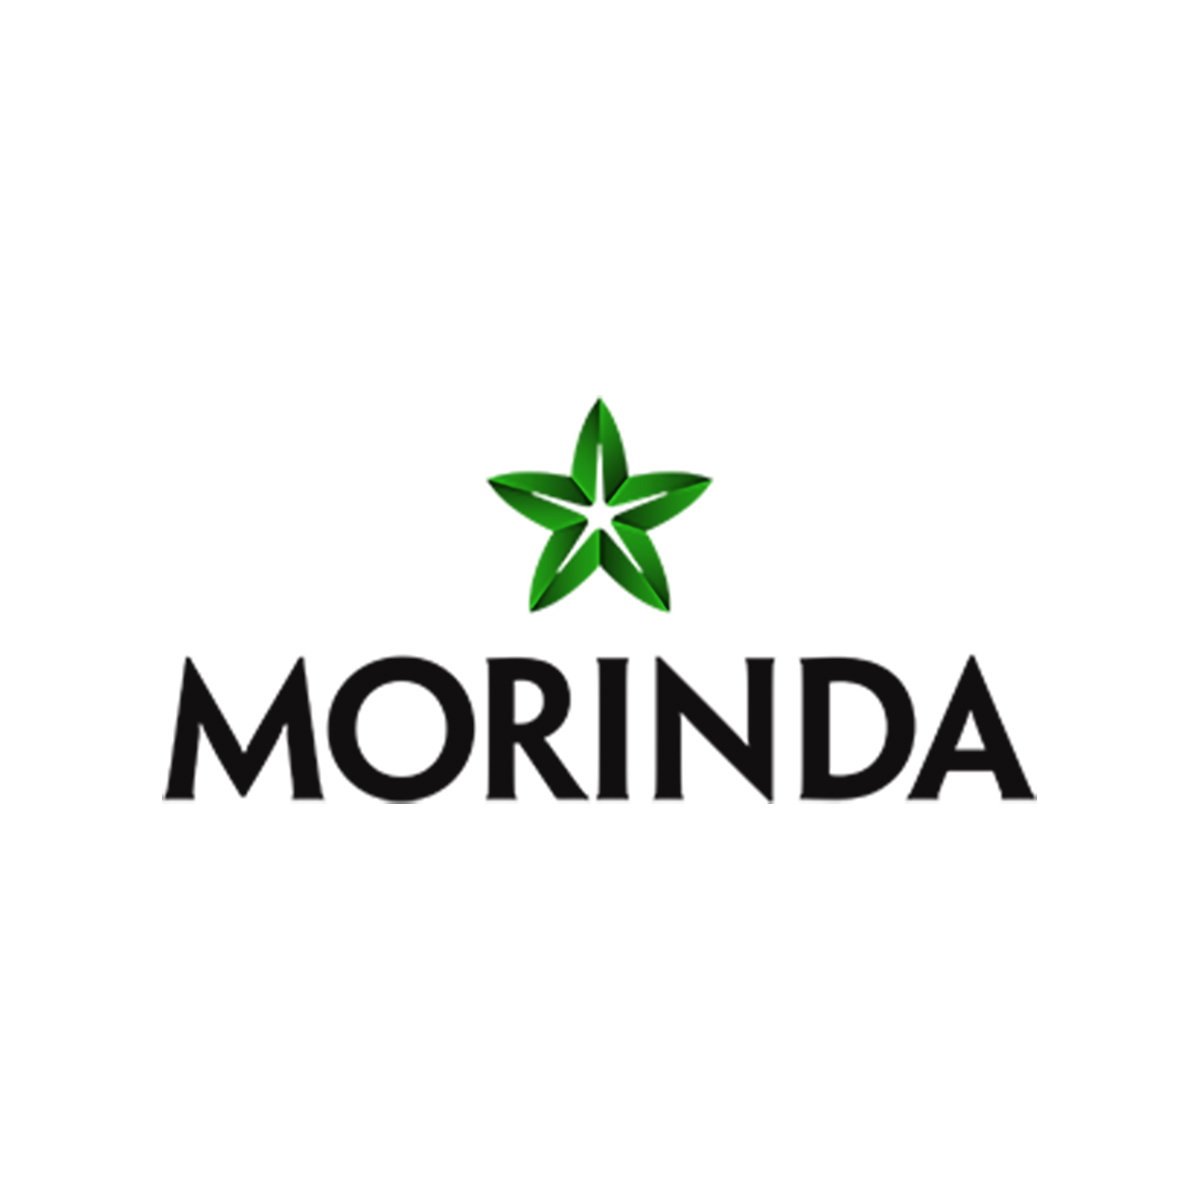 Morinda